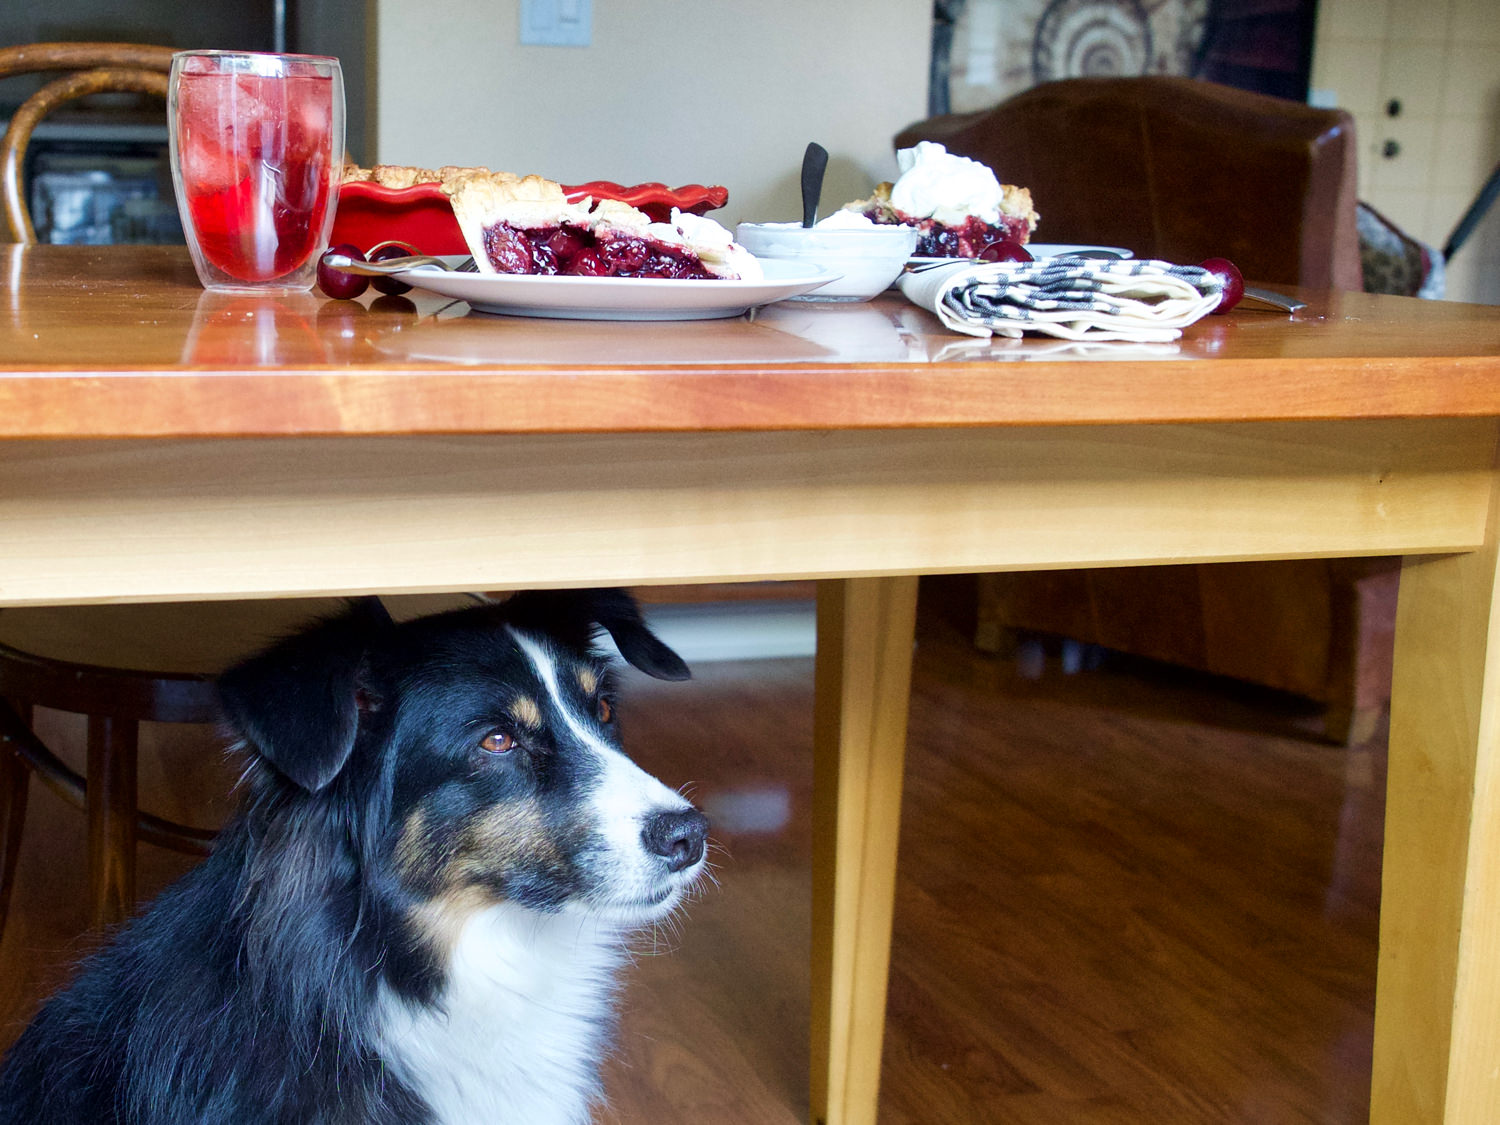 Riley waited under the table today for something to come his way...